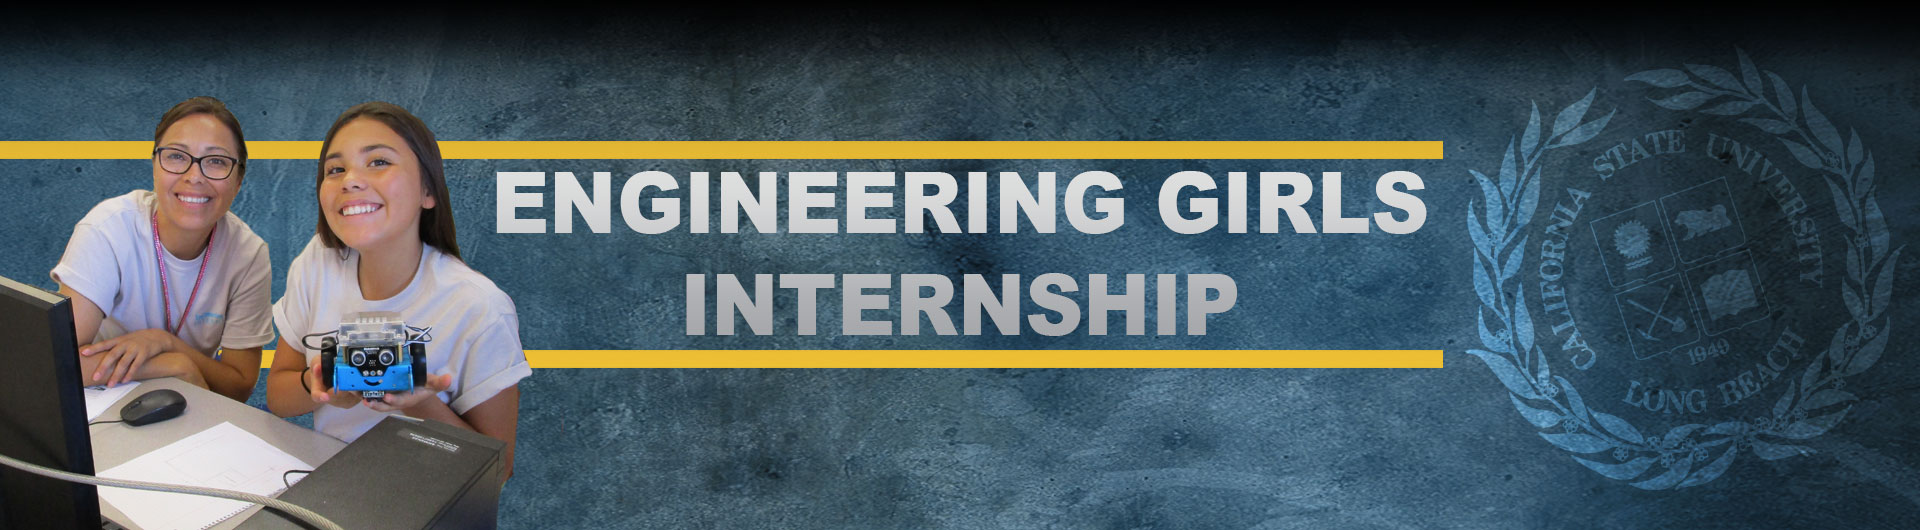 Engineering Girls Internship